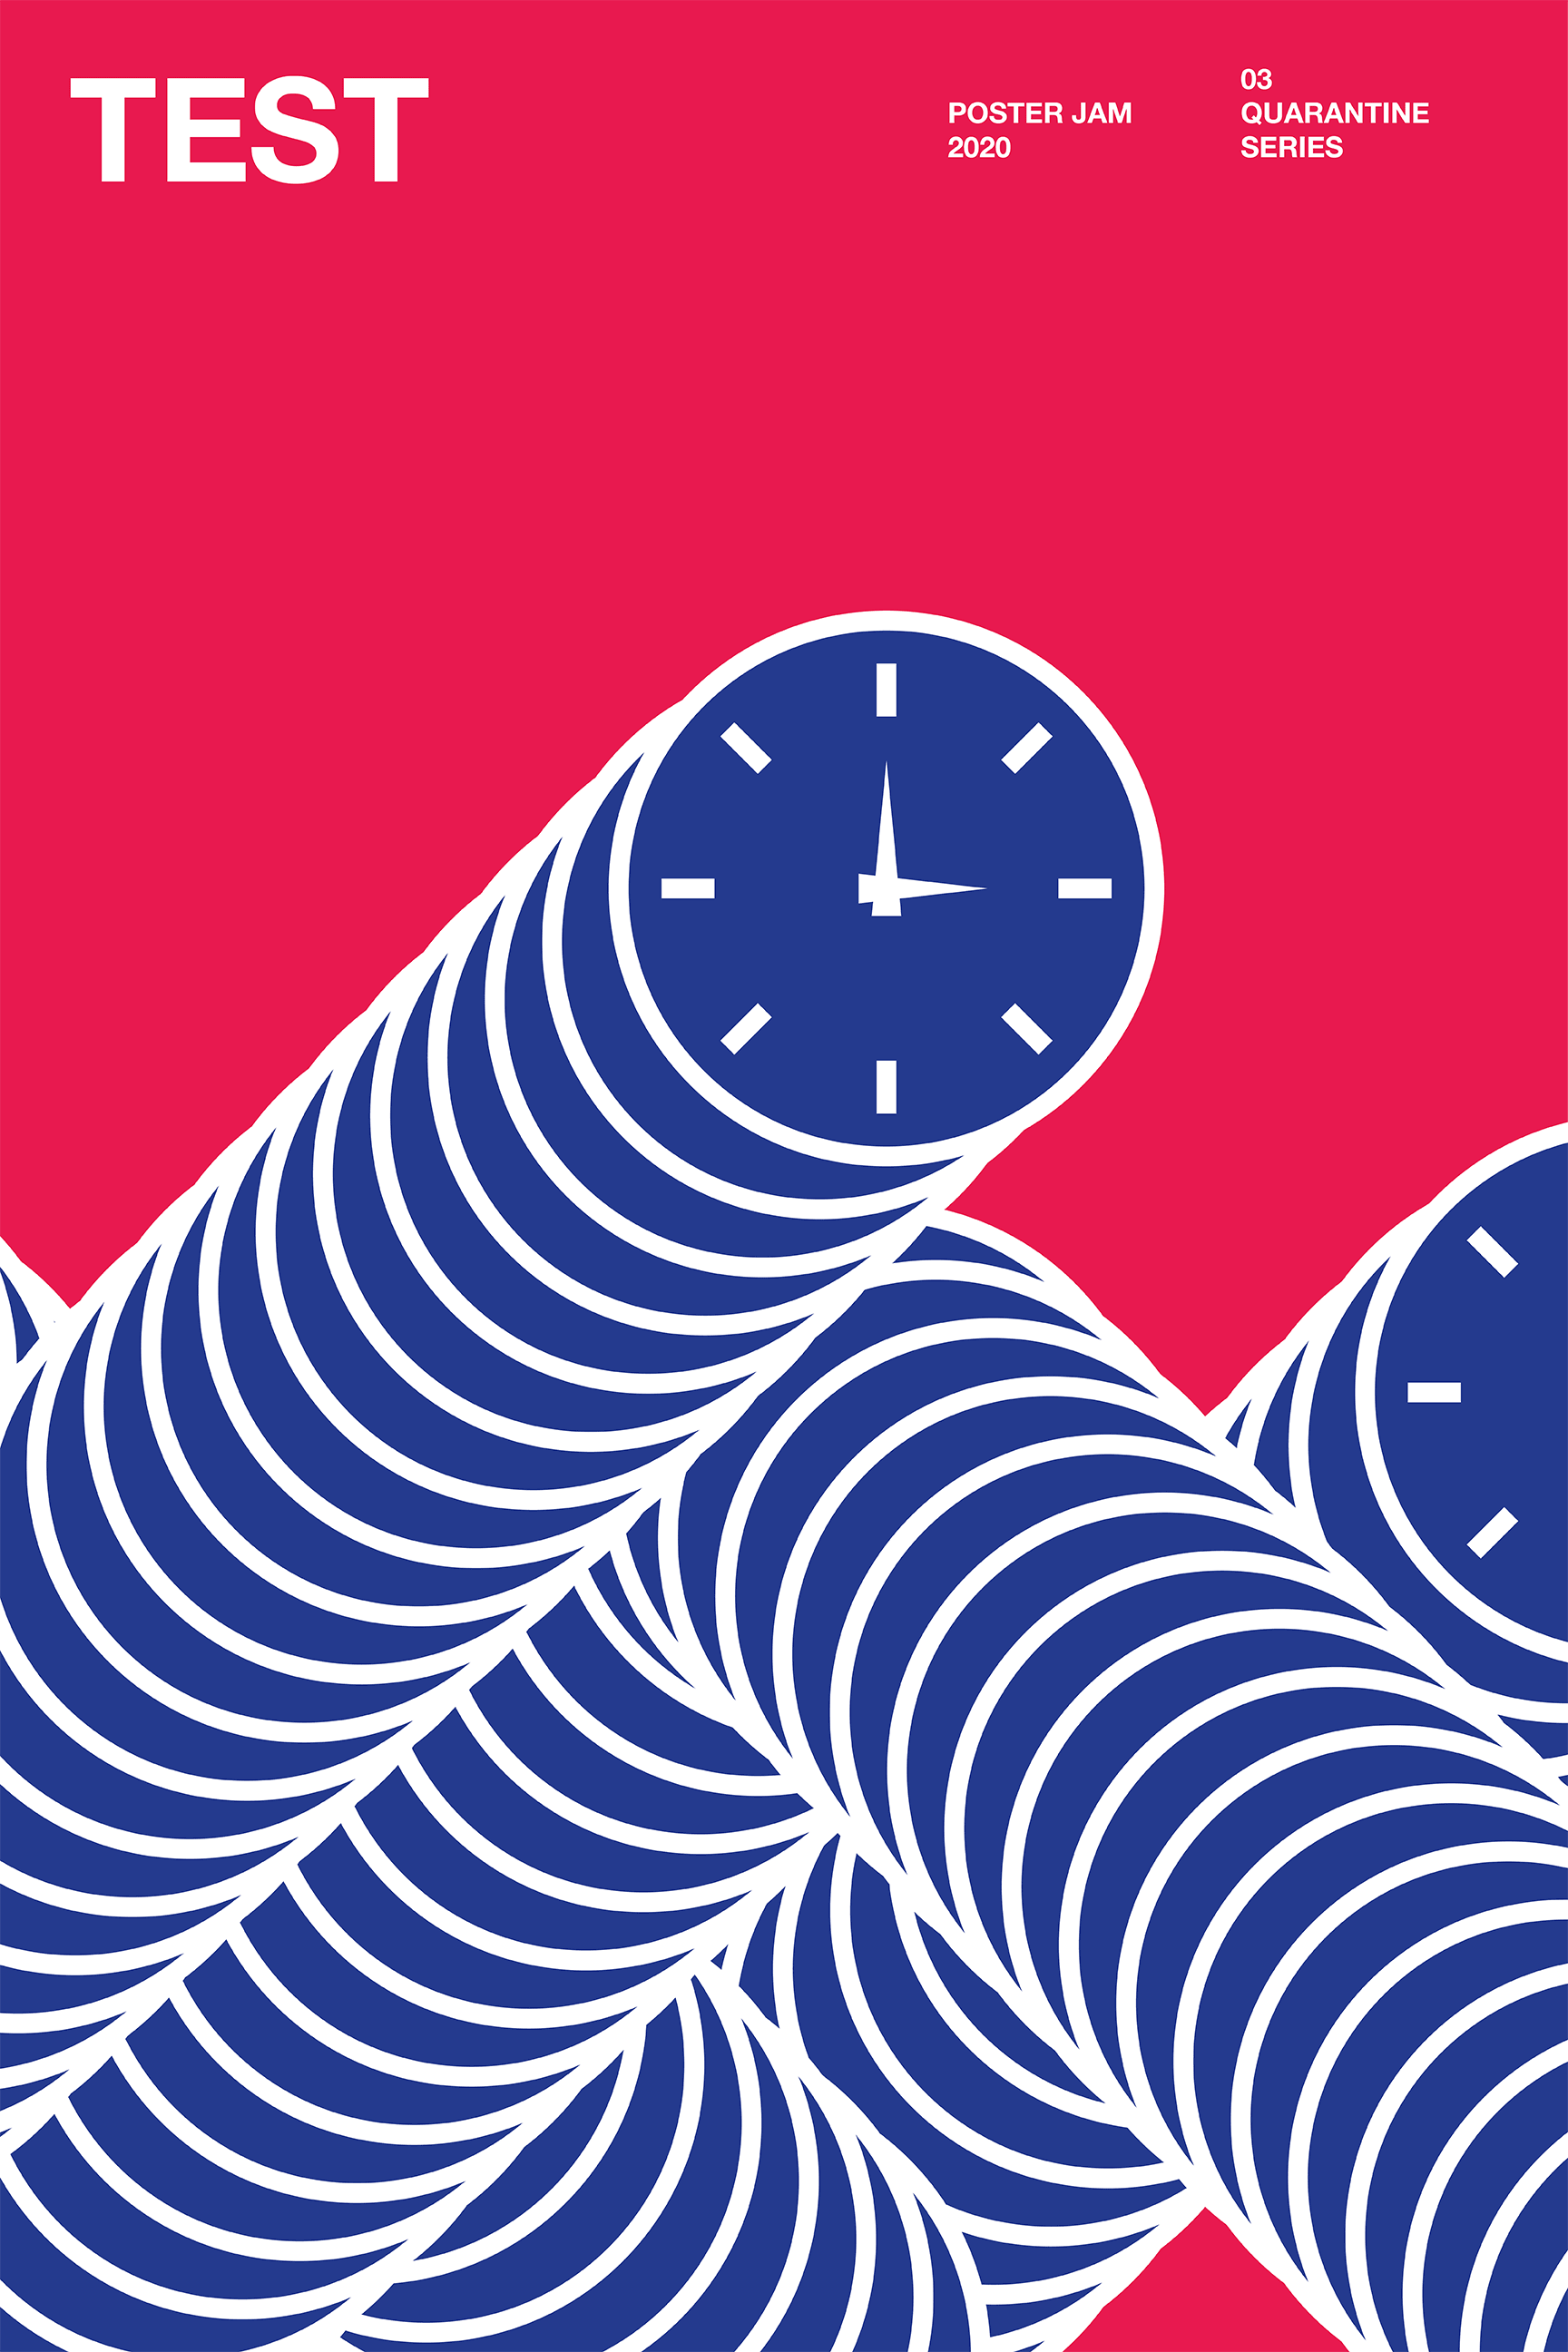 Poster Jam Submission - TEST